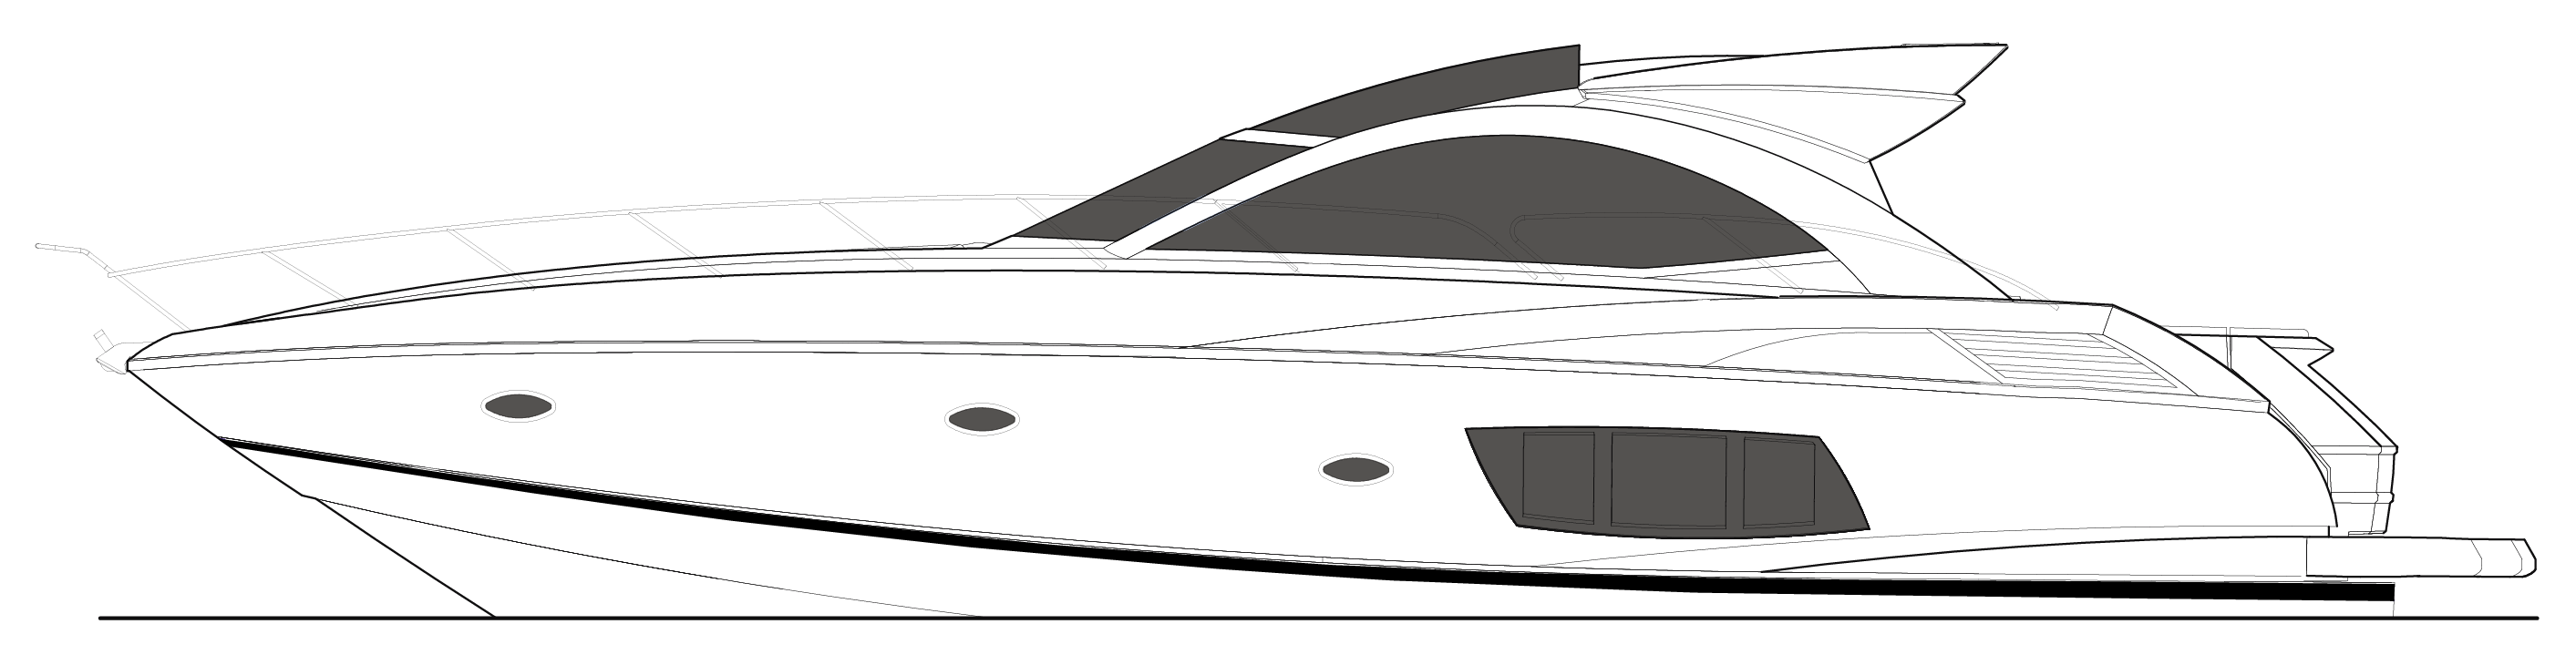 image freeuse download Sunseeker portofino . Yacht clipart black and white